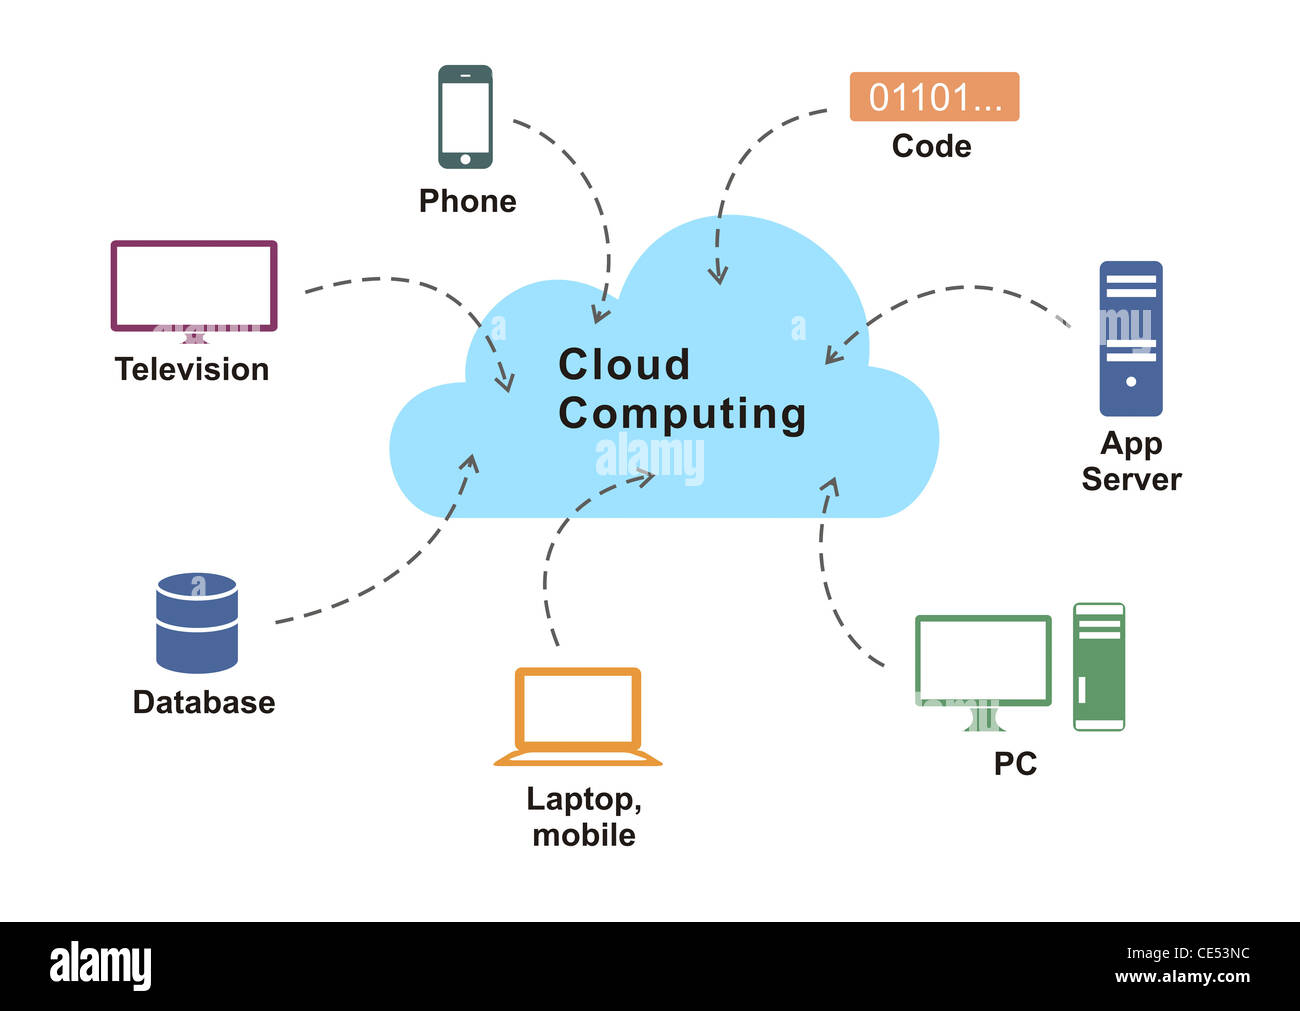 Computer Diagram Stock Photos Images Alamy Glass On The Electronic Schematic Diagramideal Technology Background Cloud Computing Application White Image